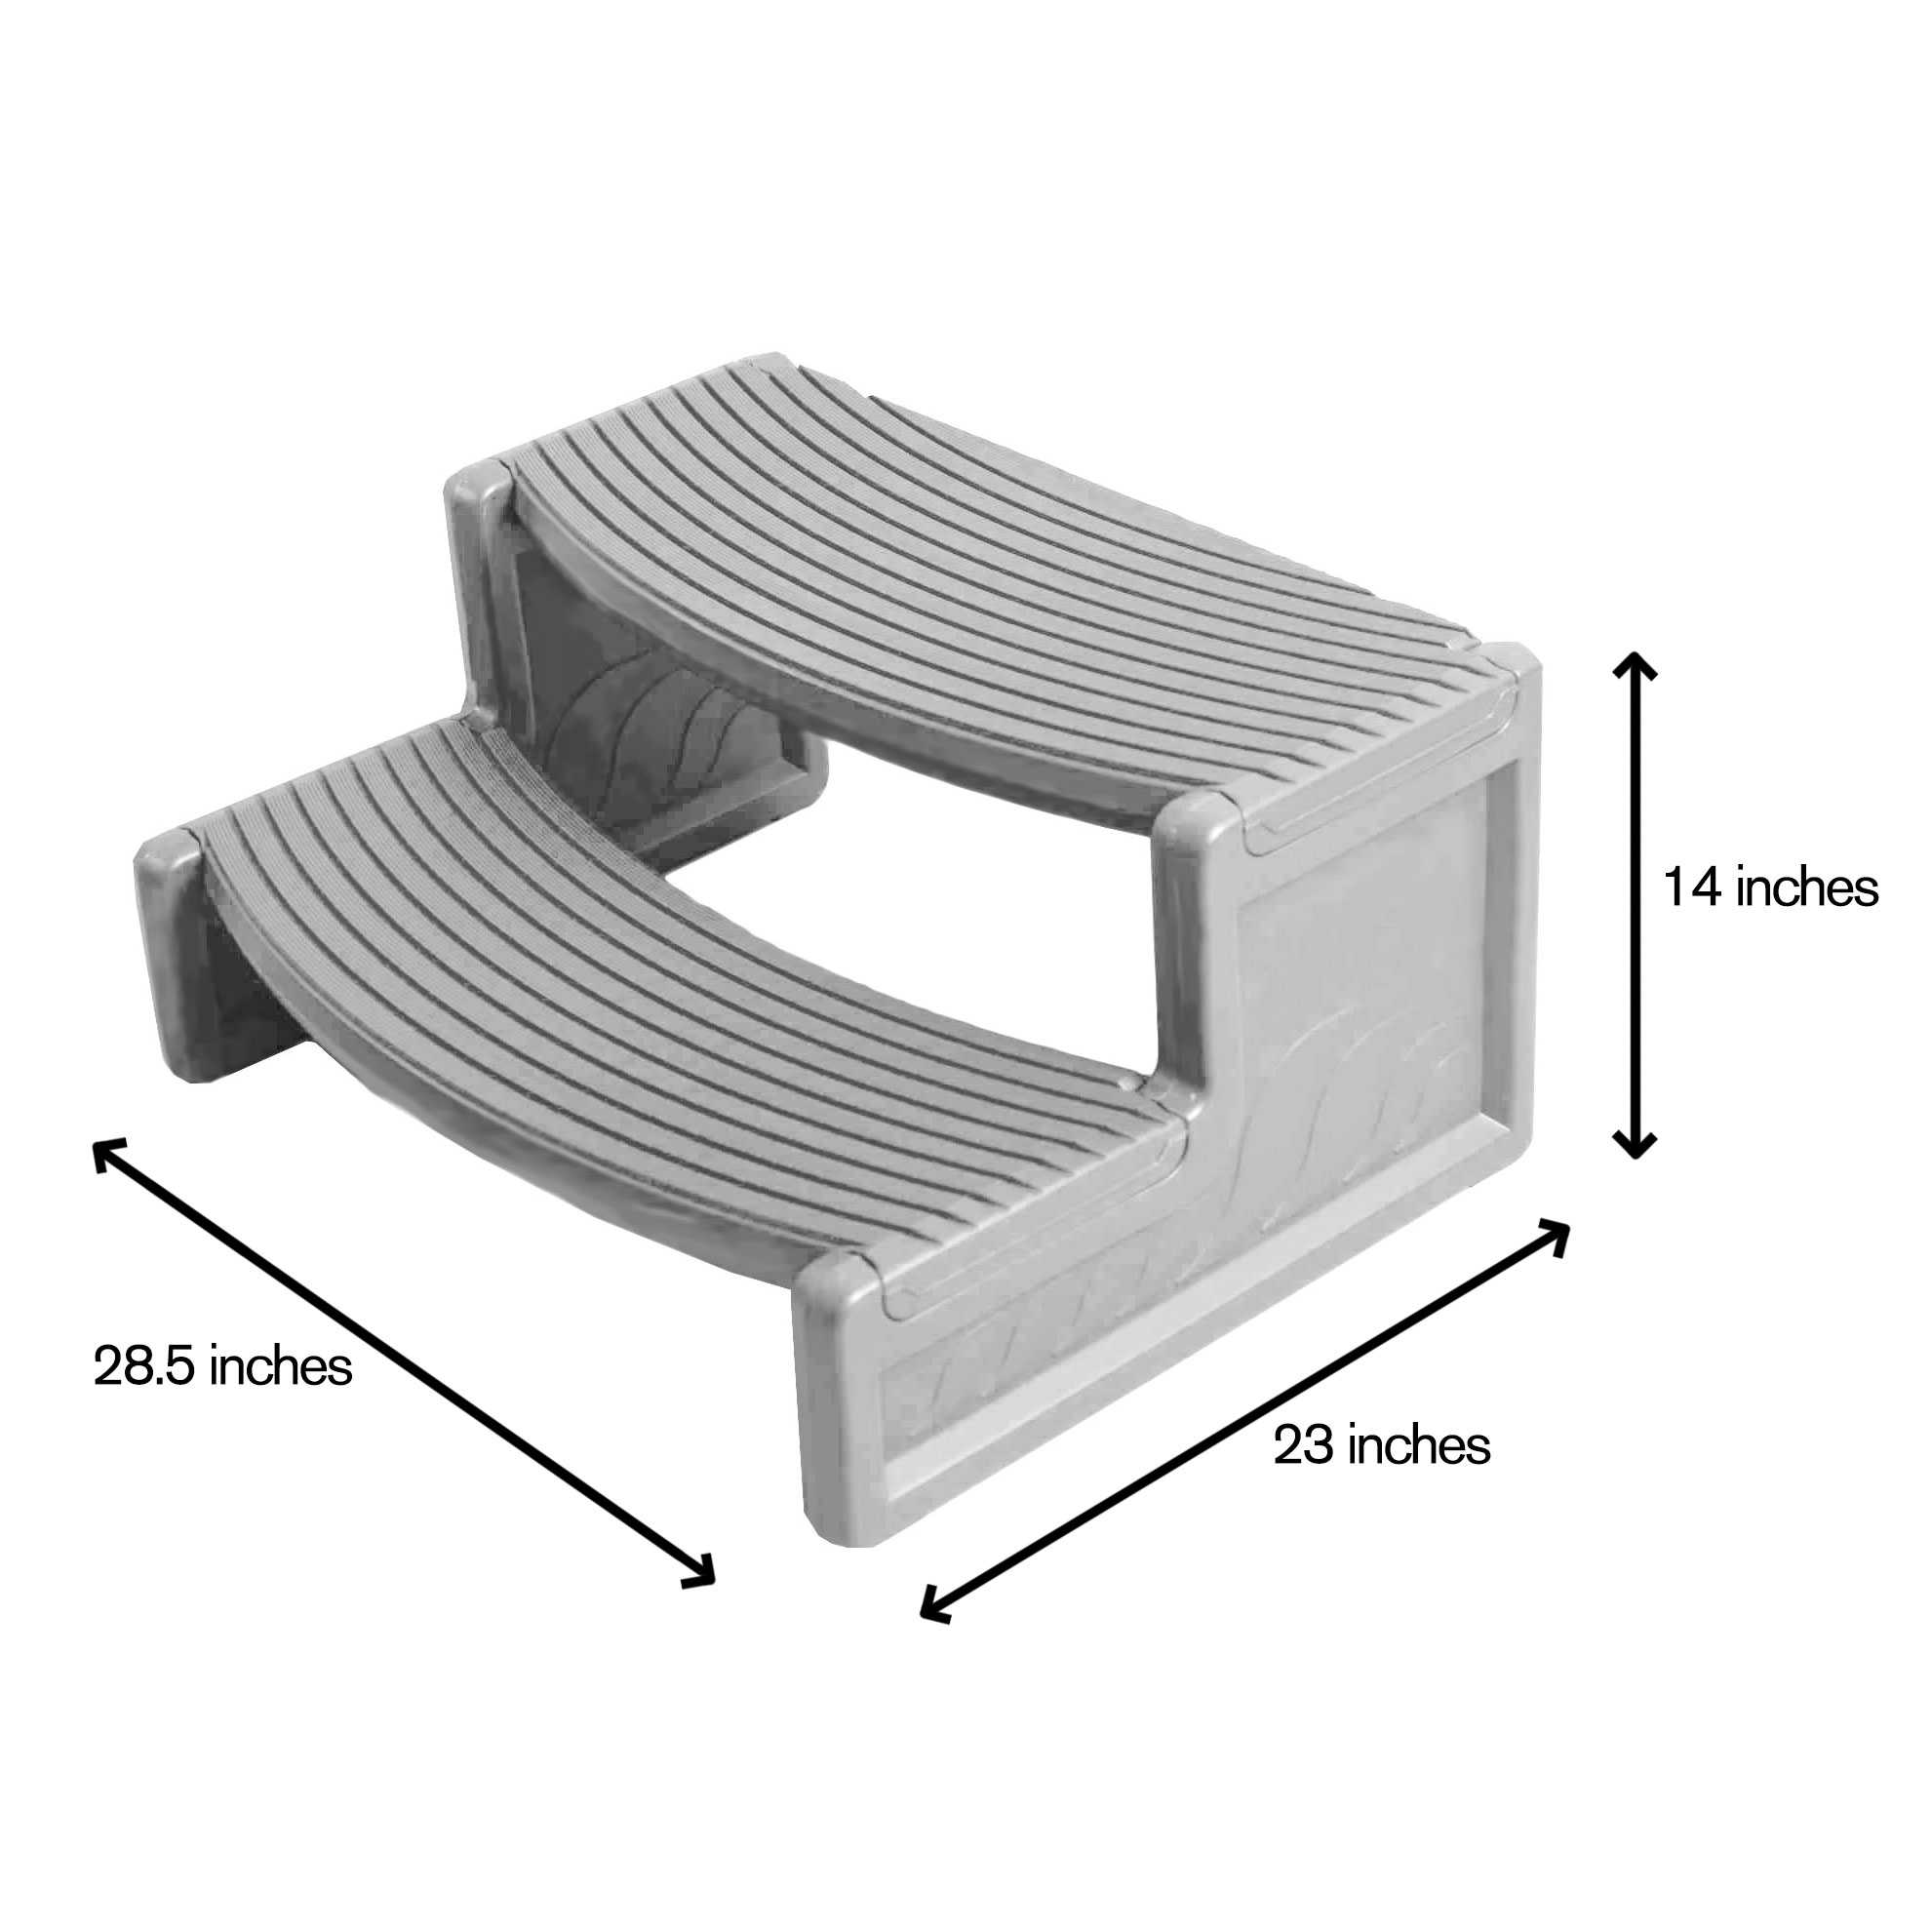 Confer Plastics HS2-G Resin Multi Purpose Spa Hot Tub Handi-Step RV Steps | Gray